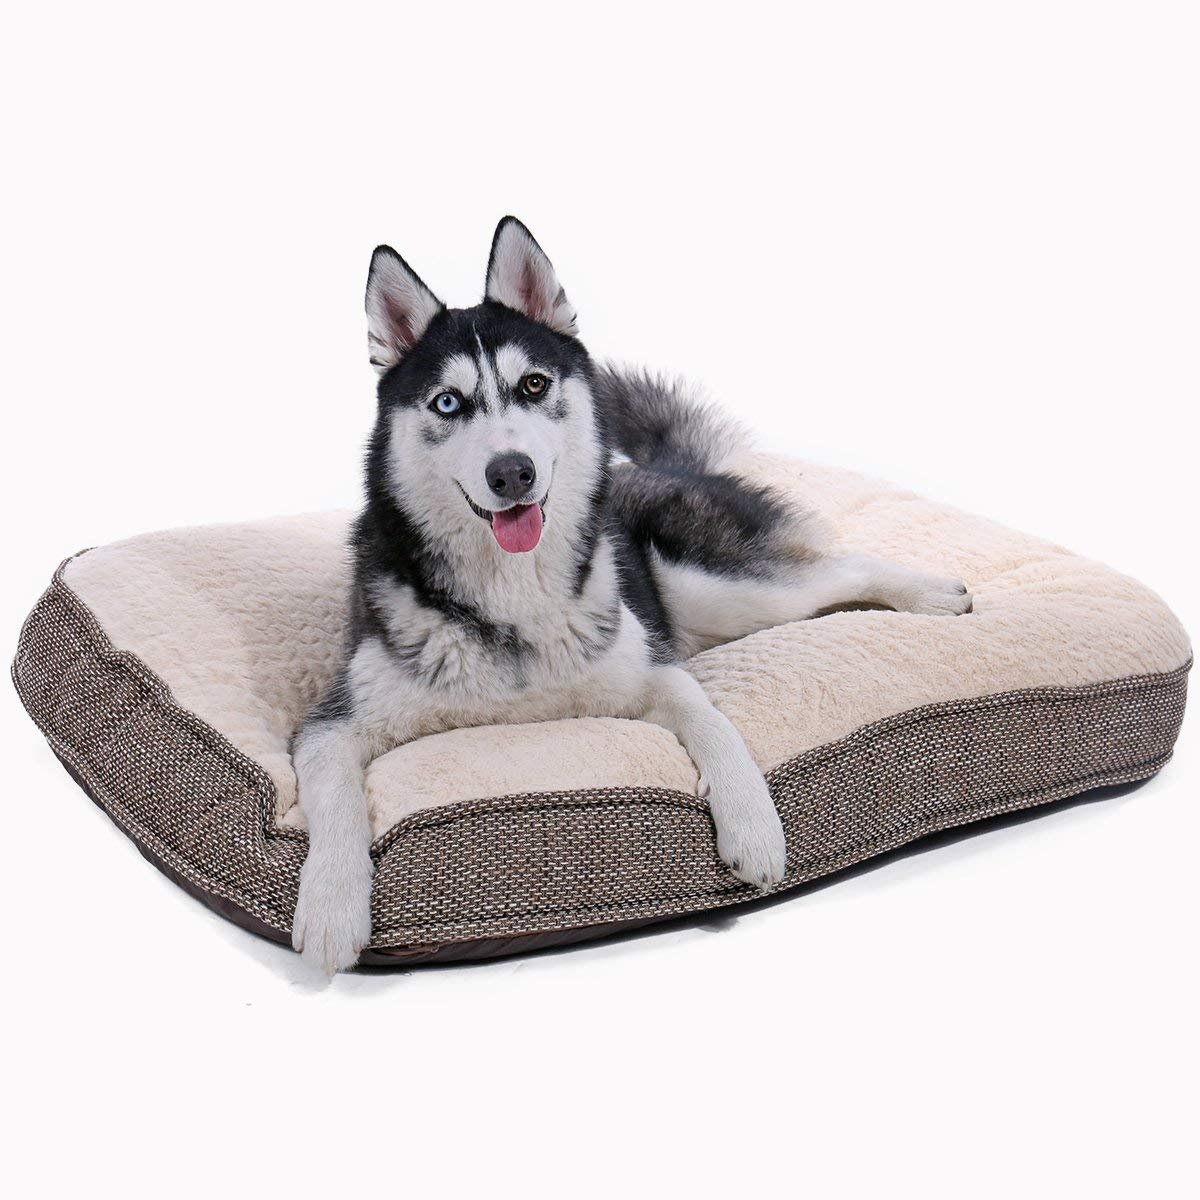 PAWZ Road Luxury Dog Bed Cushion Mat Suitable for Medium and Large Dog Features Removable Cover,Water-Resistant and Anti-Skidding Bottom, Machine Washable, Beige-33 X26